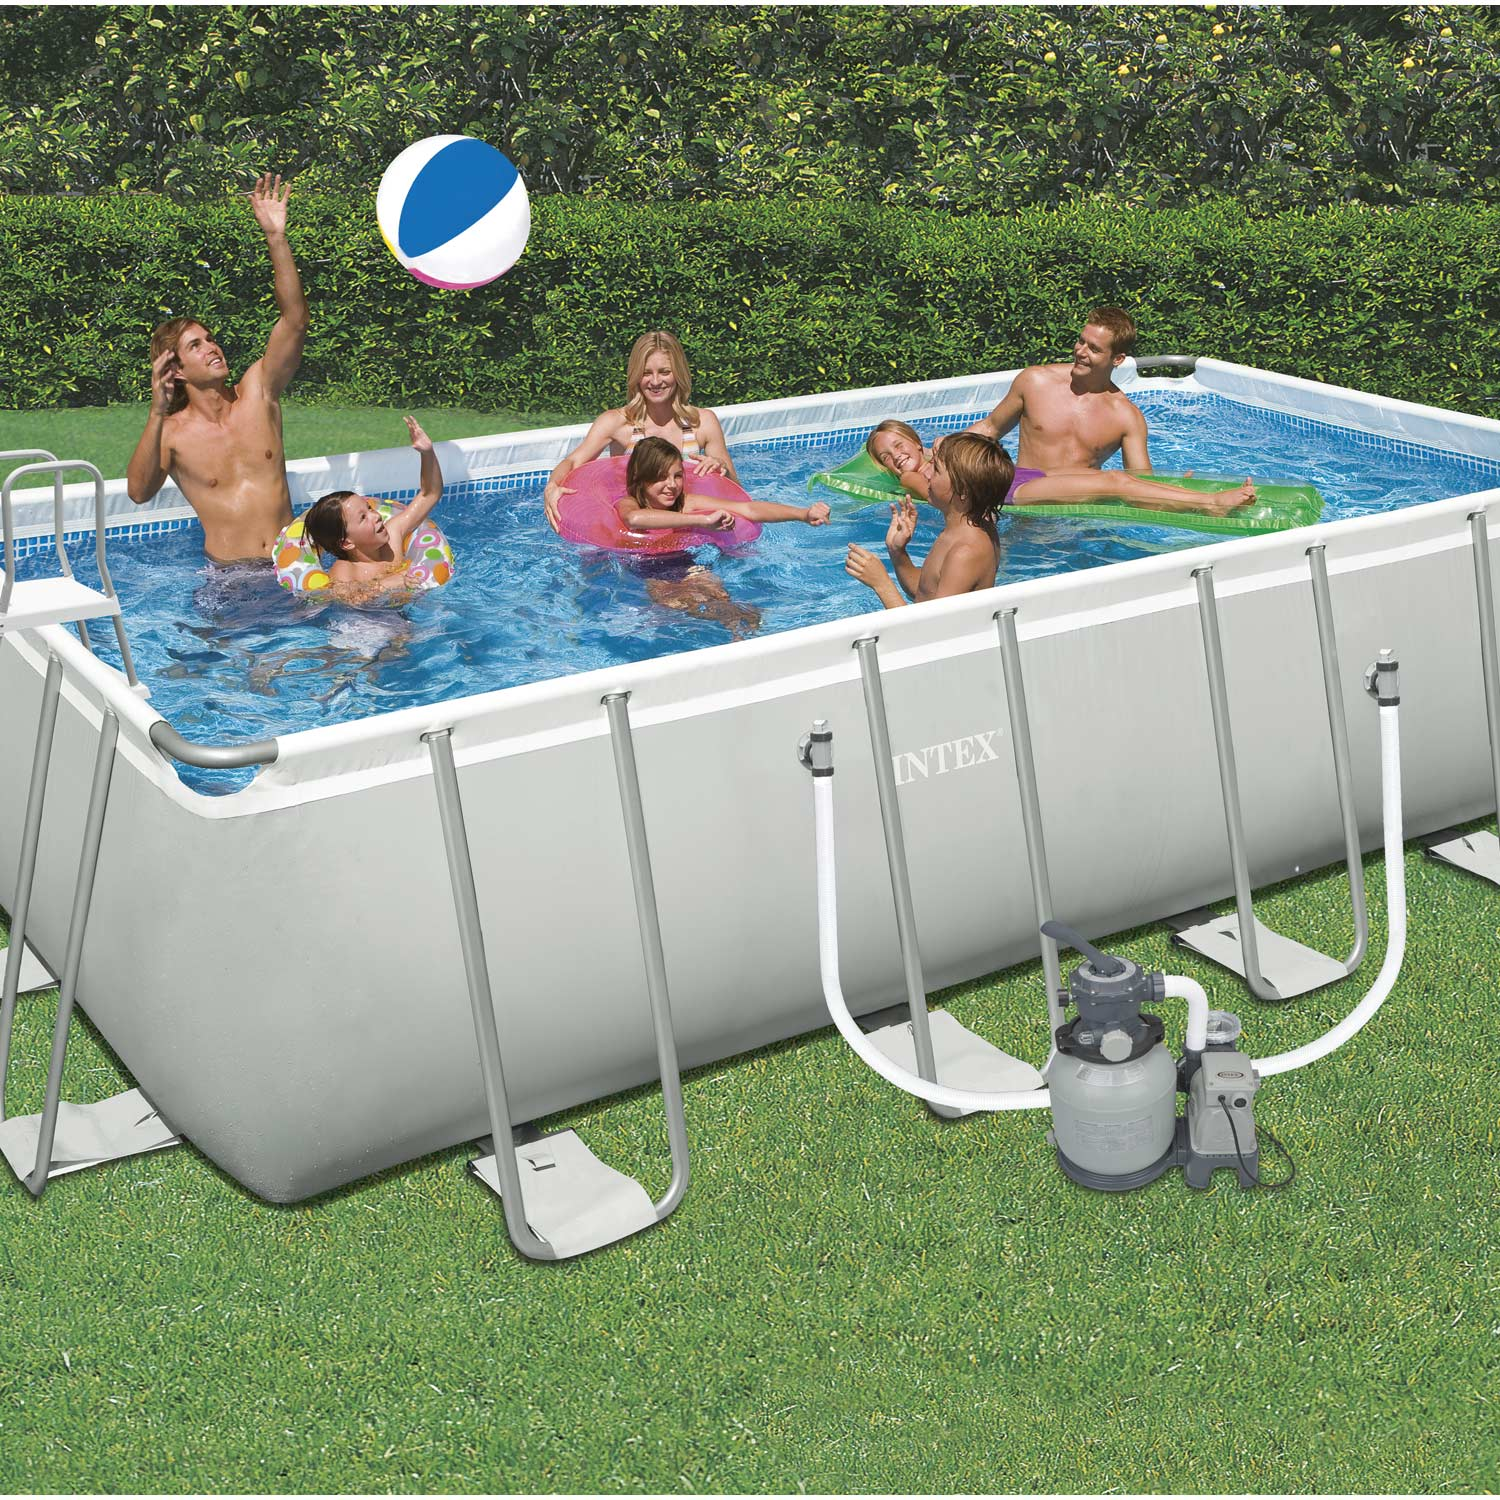 Piscine hors sol autoportante tubulaire intex l x l for Piscine tubulaire rectangulaire